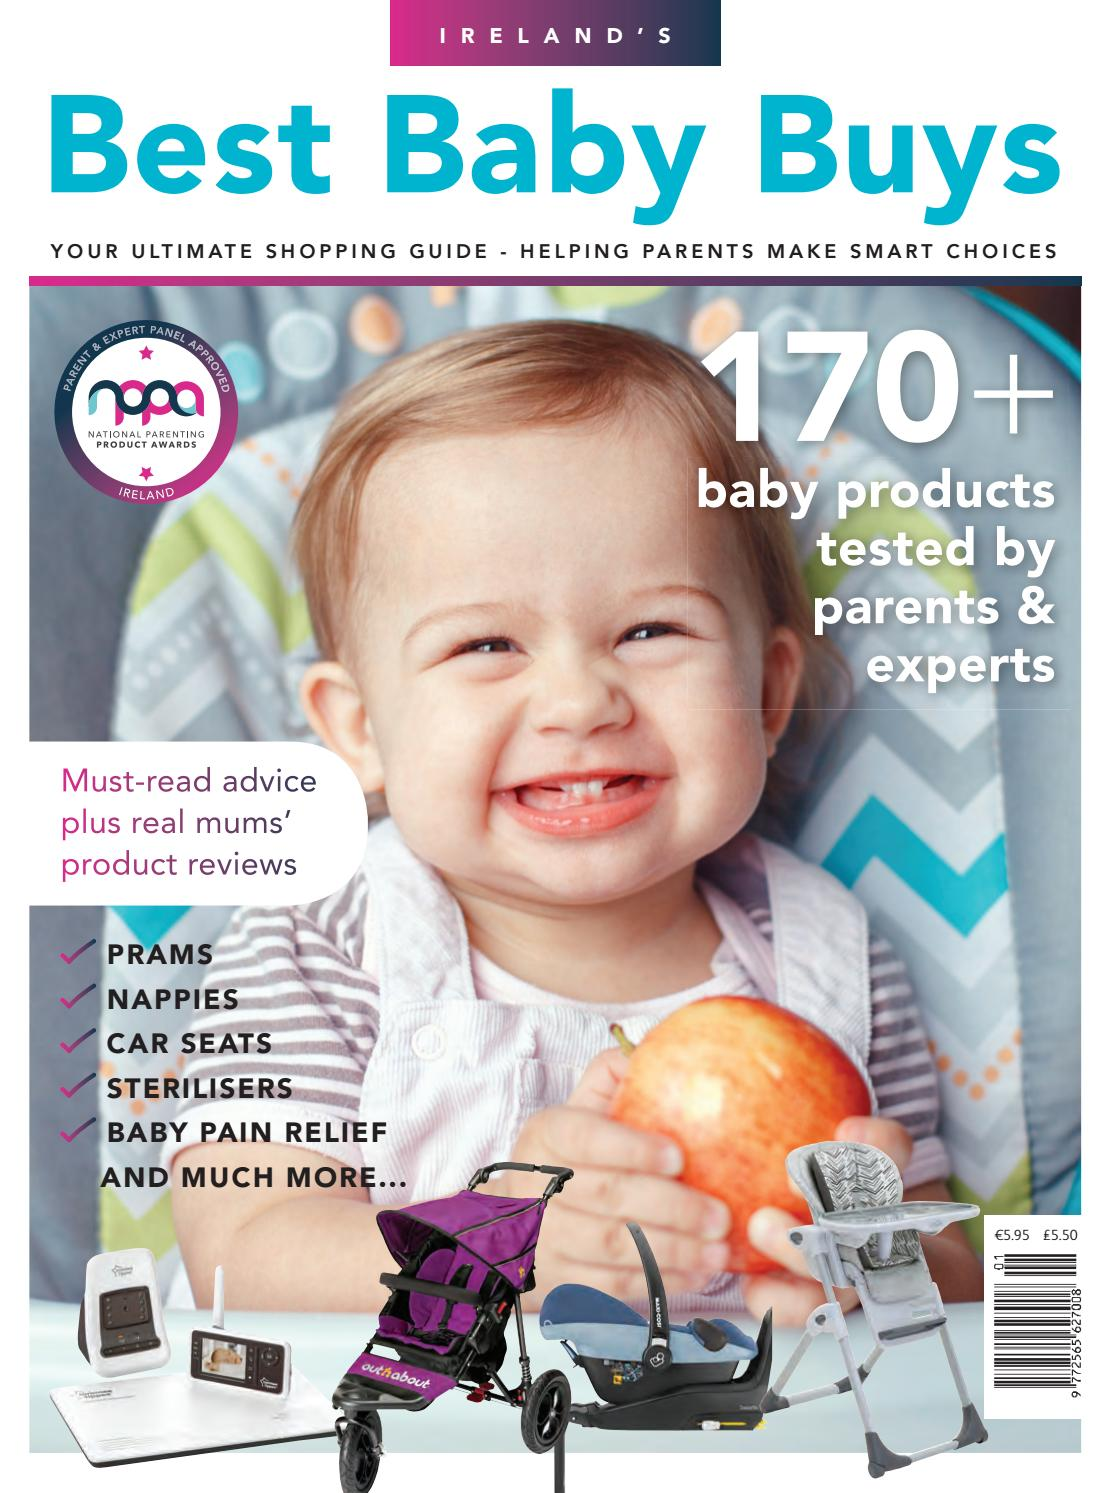 249d962d677 Ireland s Best Baby Buys by zahramediagroup10 - issuu